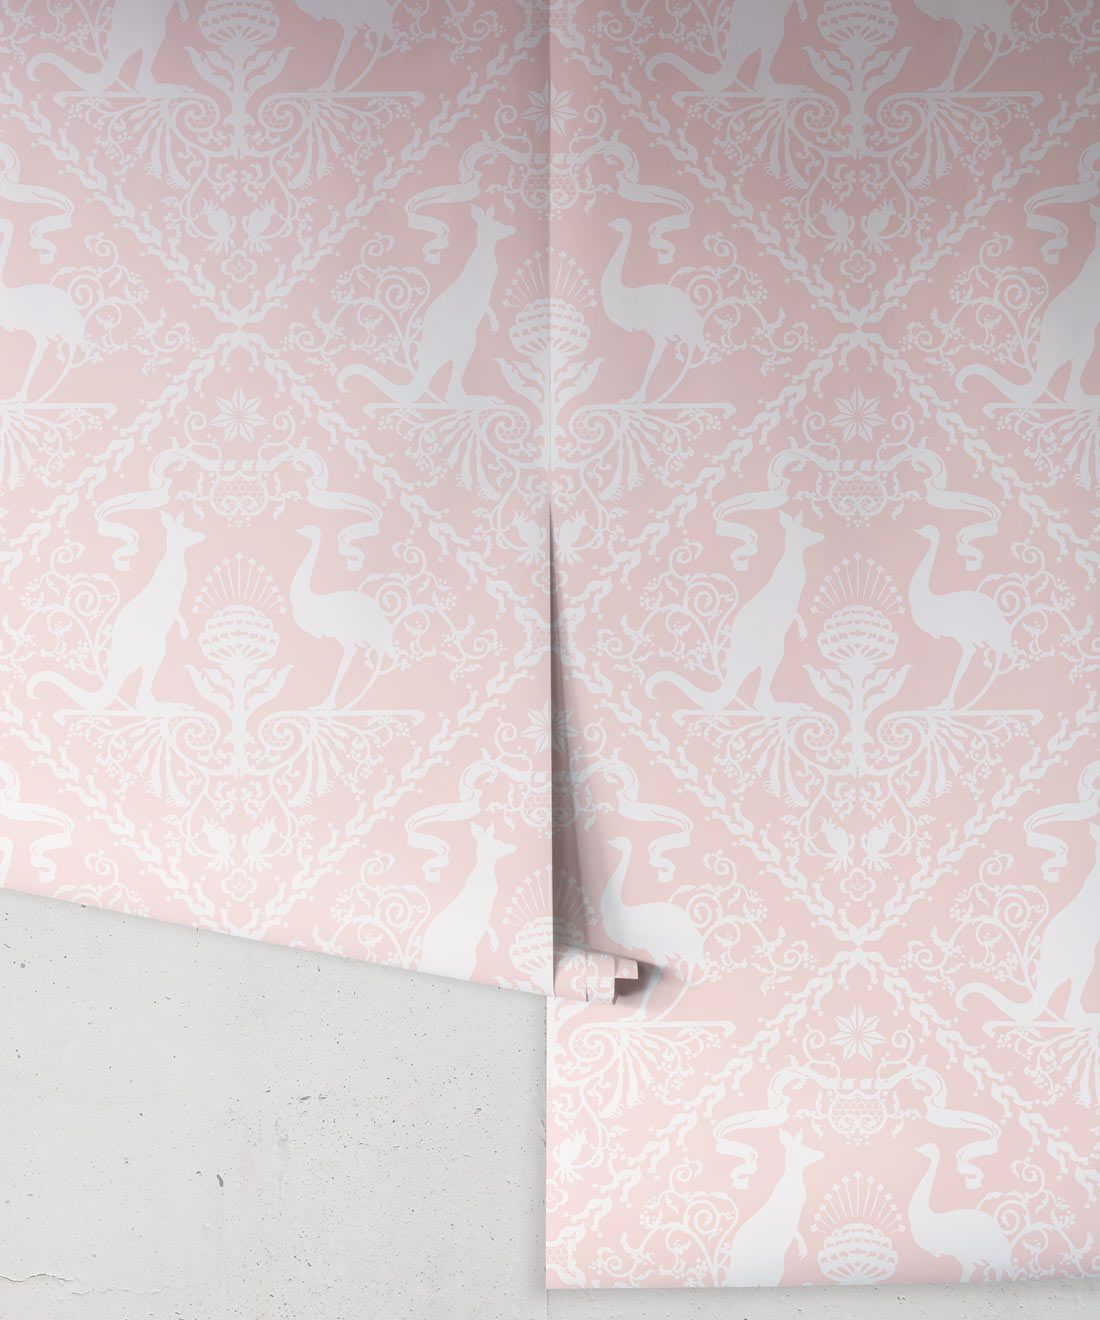 In Australia We Trust Coral • Australian Wallpaper • Australian Coat of Arms • Milton & King USA • Pink Wallpaper Rolls